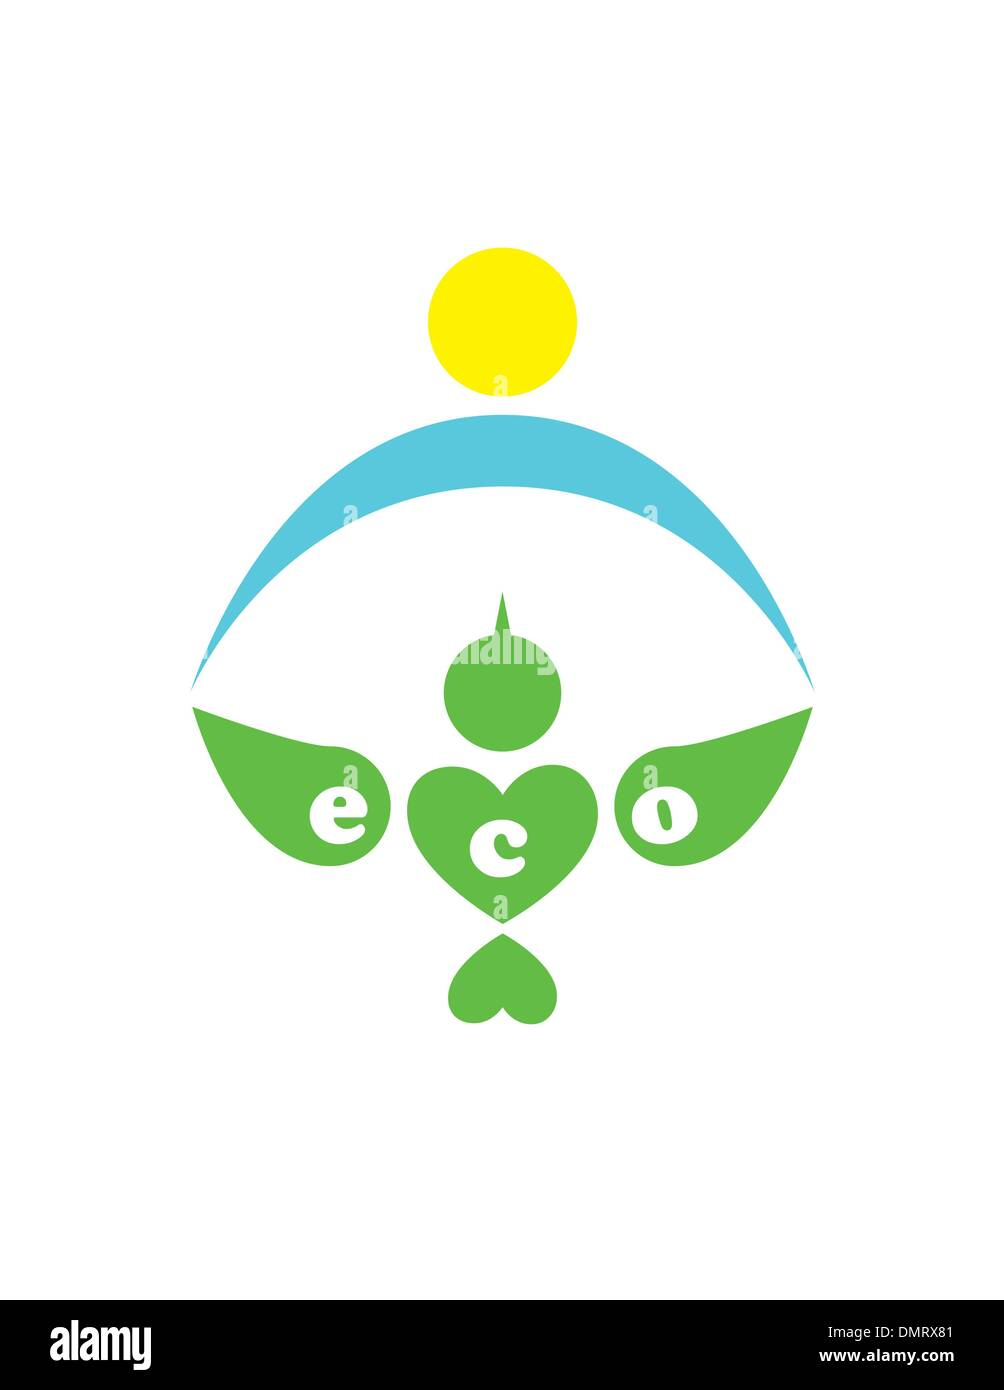 ecology logotype of bird - Stock Image